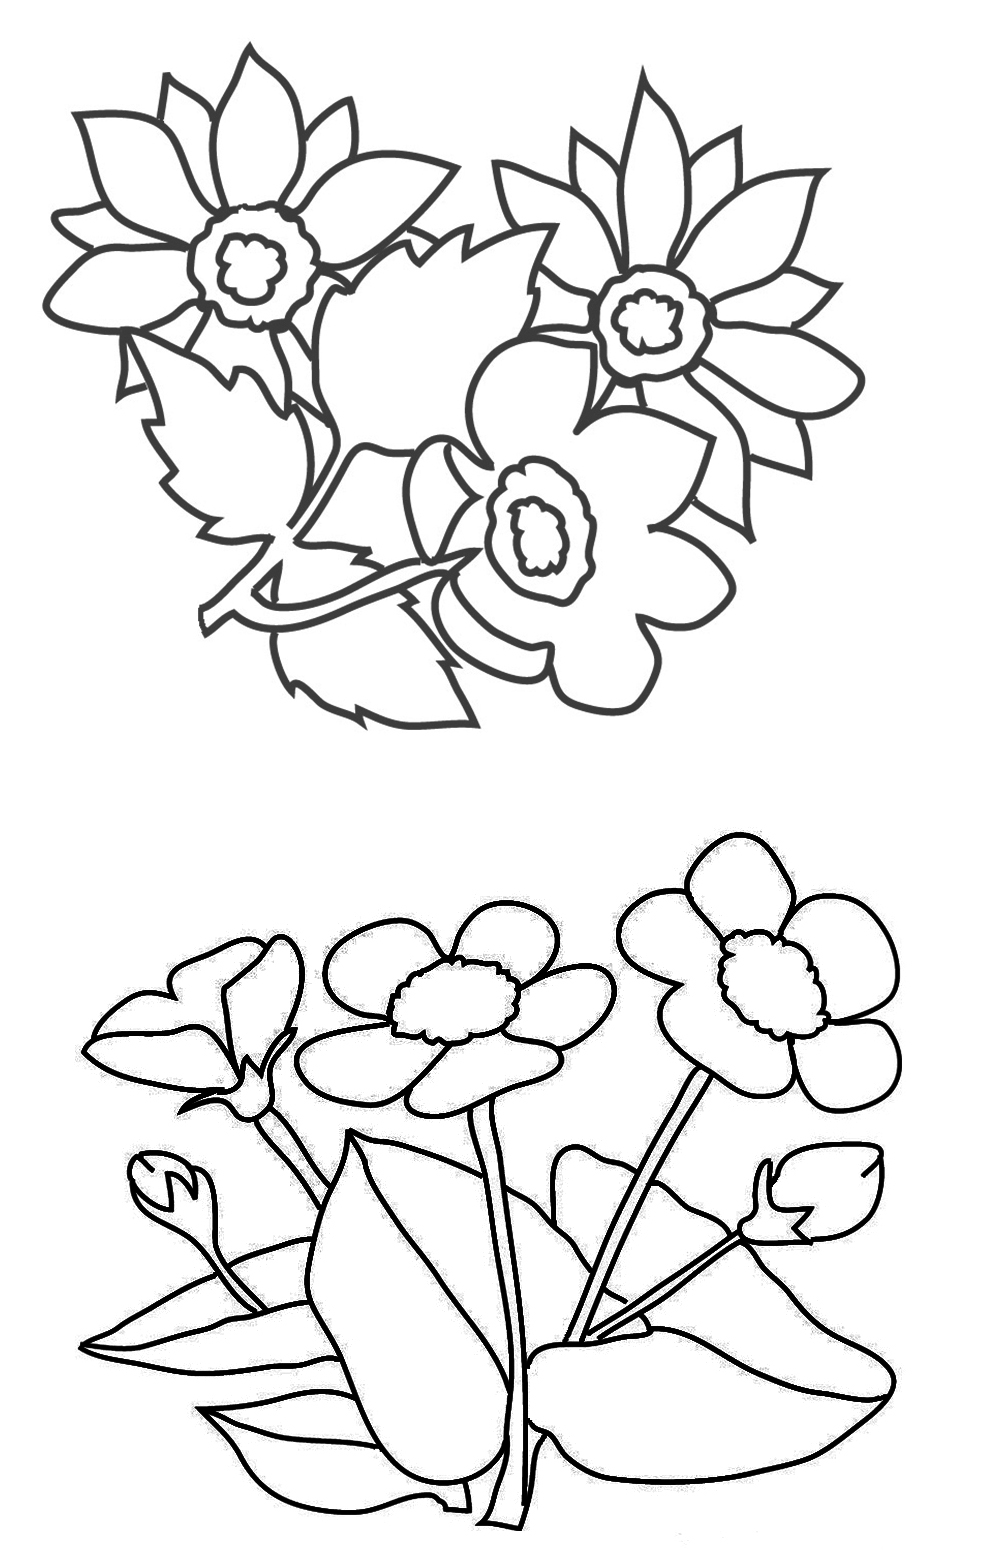 flower coloring page bouquet of flowers coloring pages for childrens printable coloring page flower